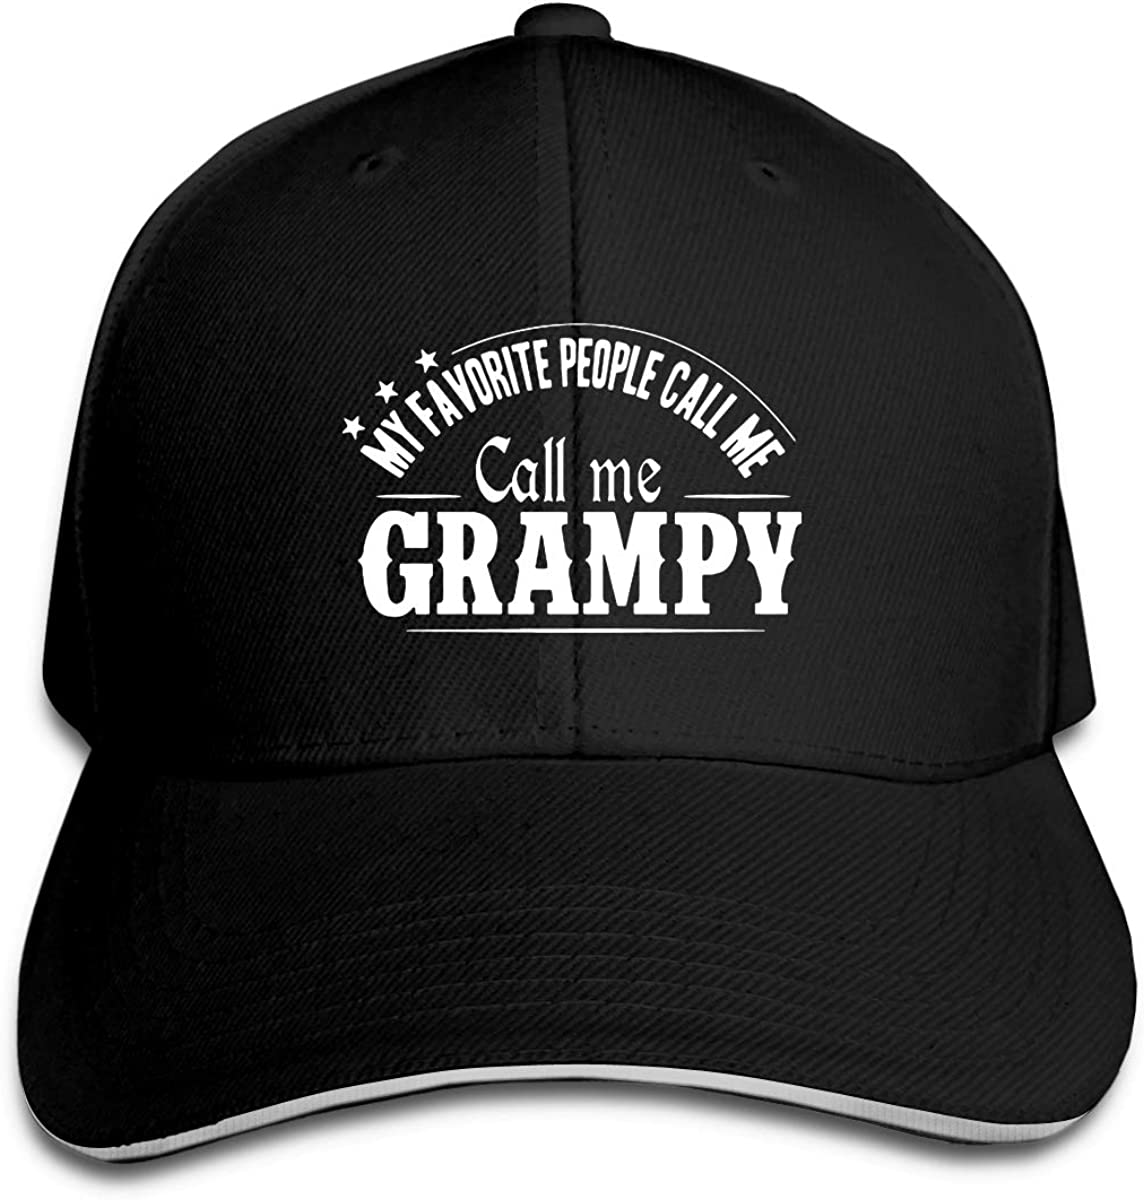 My Favorite People Call Me Grampy Unisex Washed Baseball Cap Classic Dad Hat Adjustable Trucker Hat Black